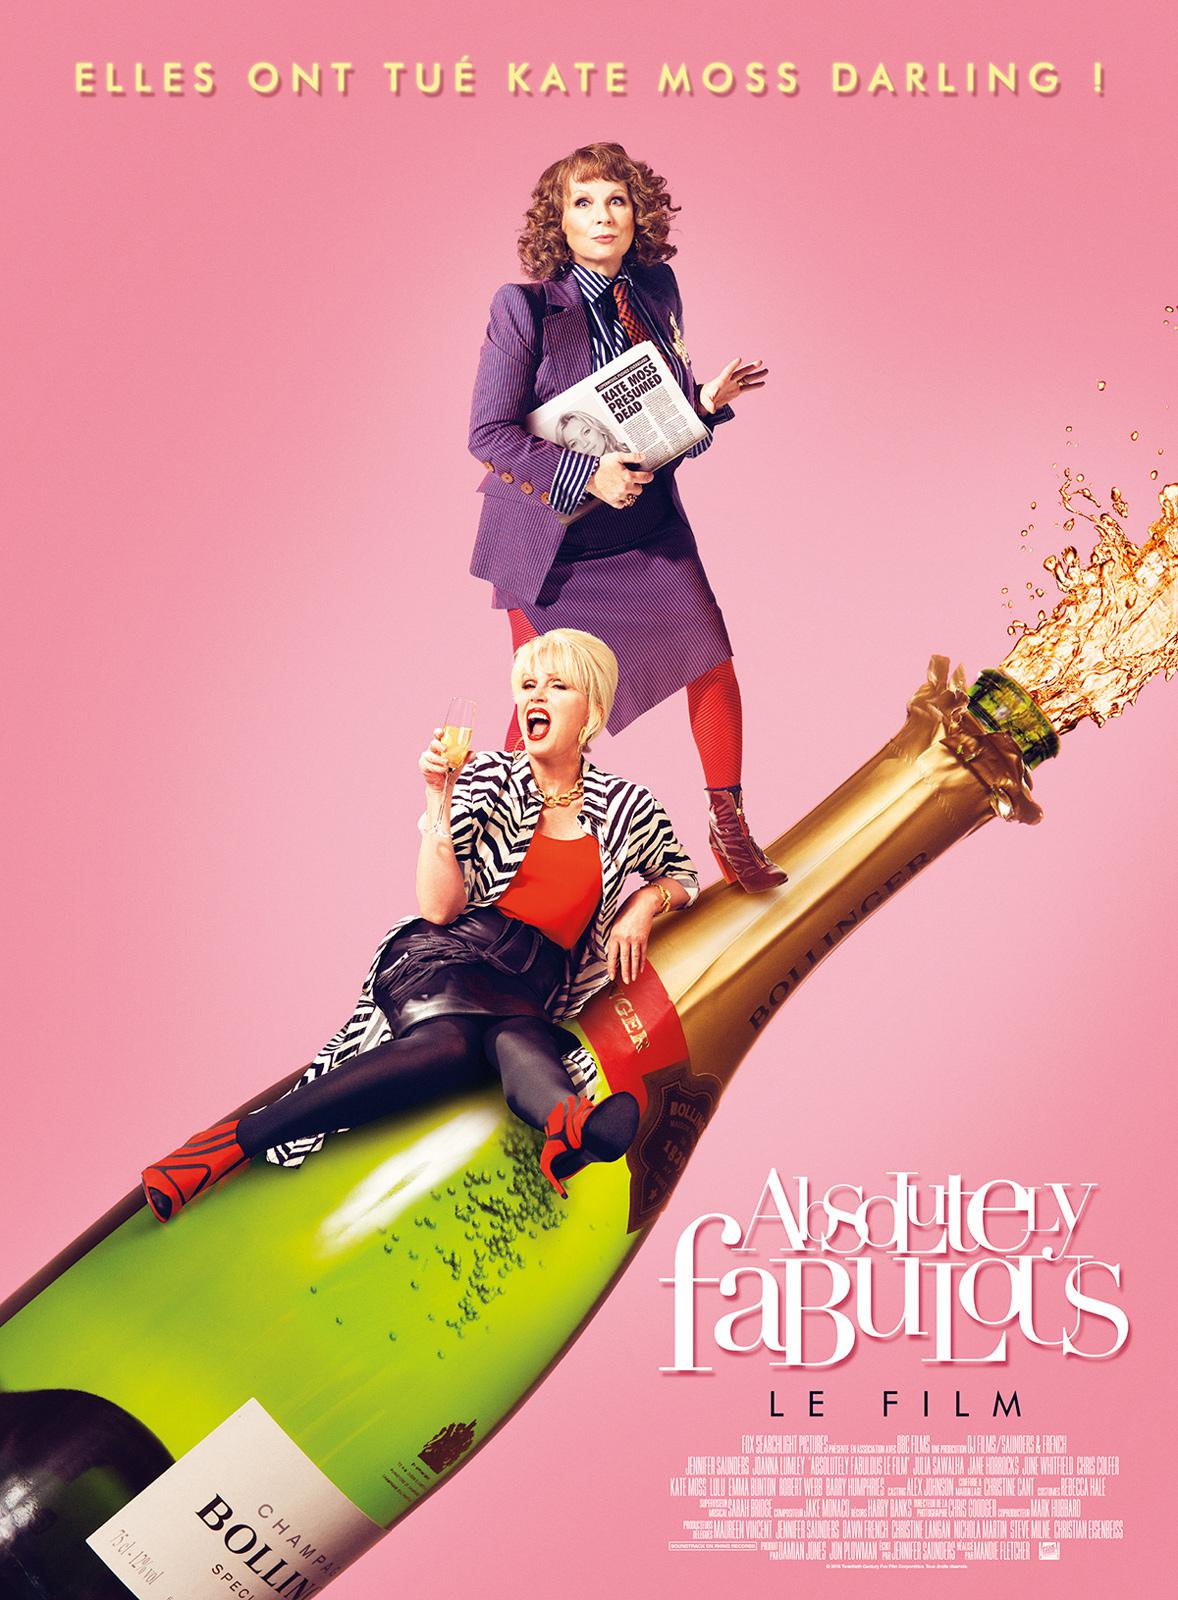 Absolutely Fabulous : Le Film (Vostfr)